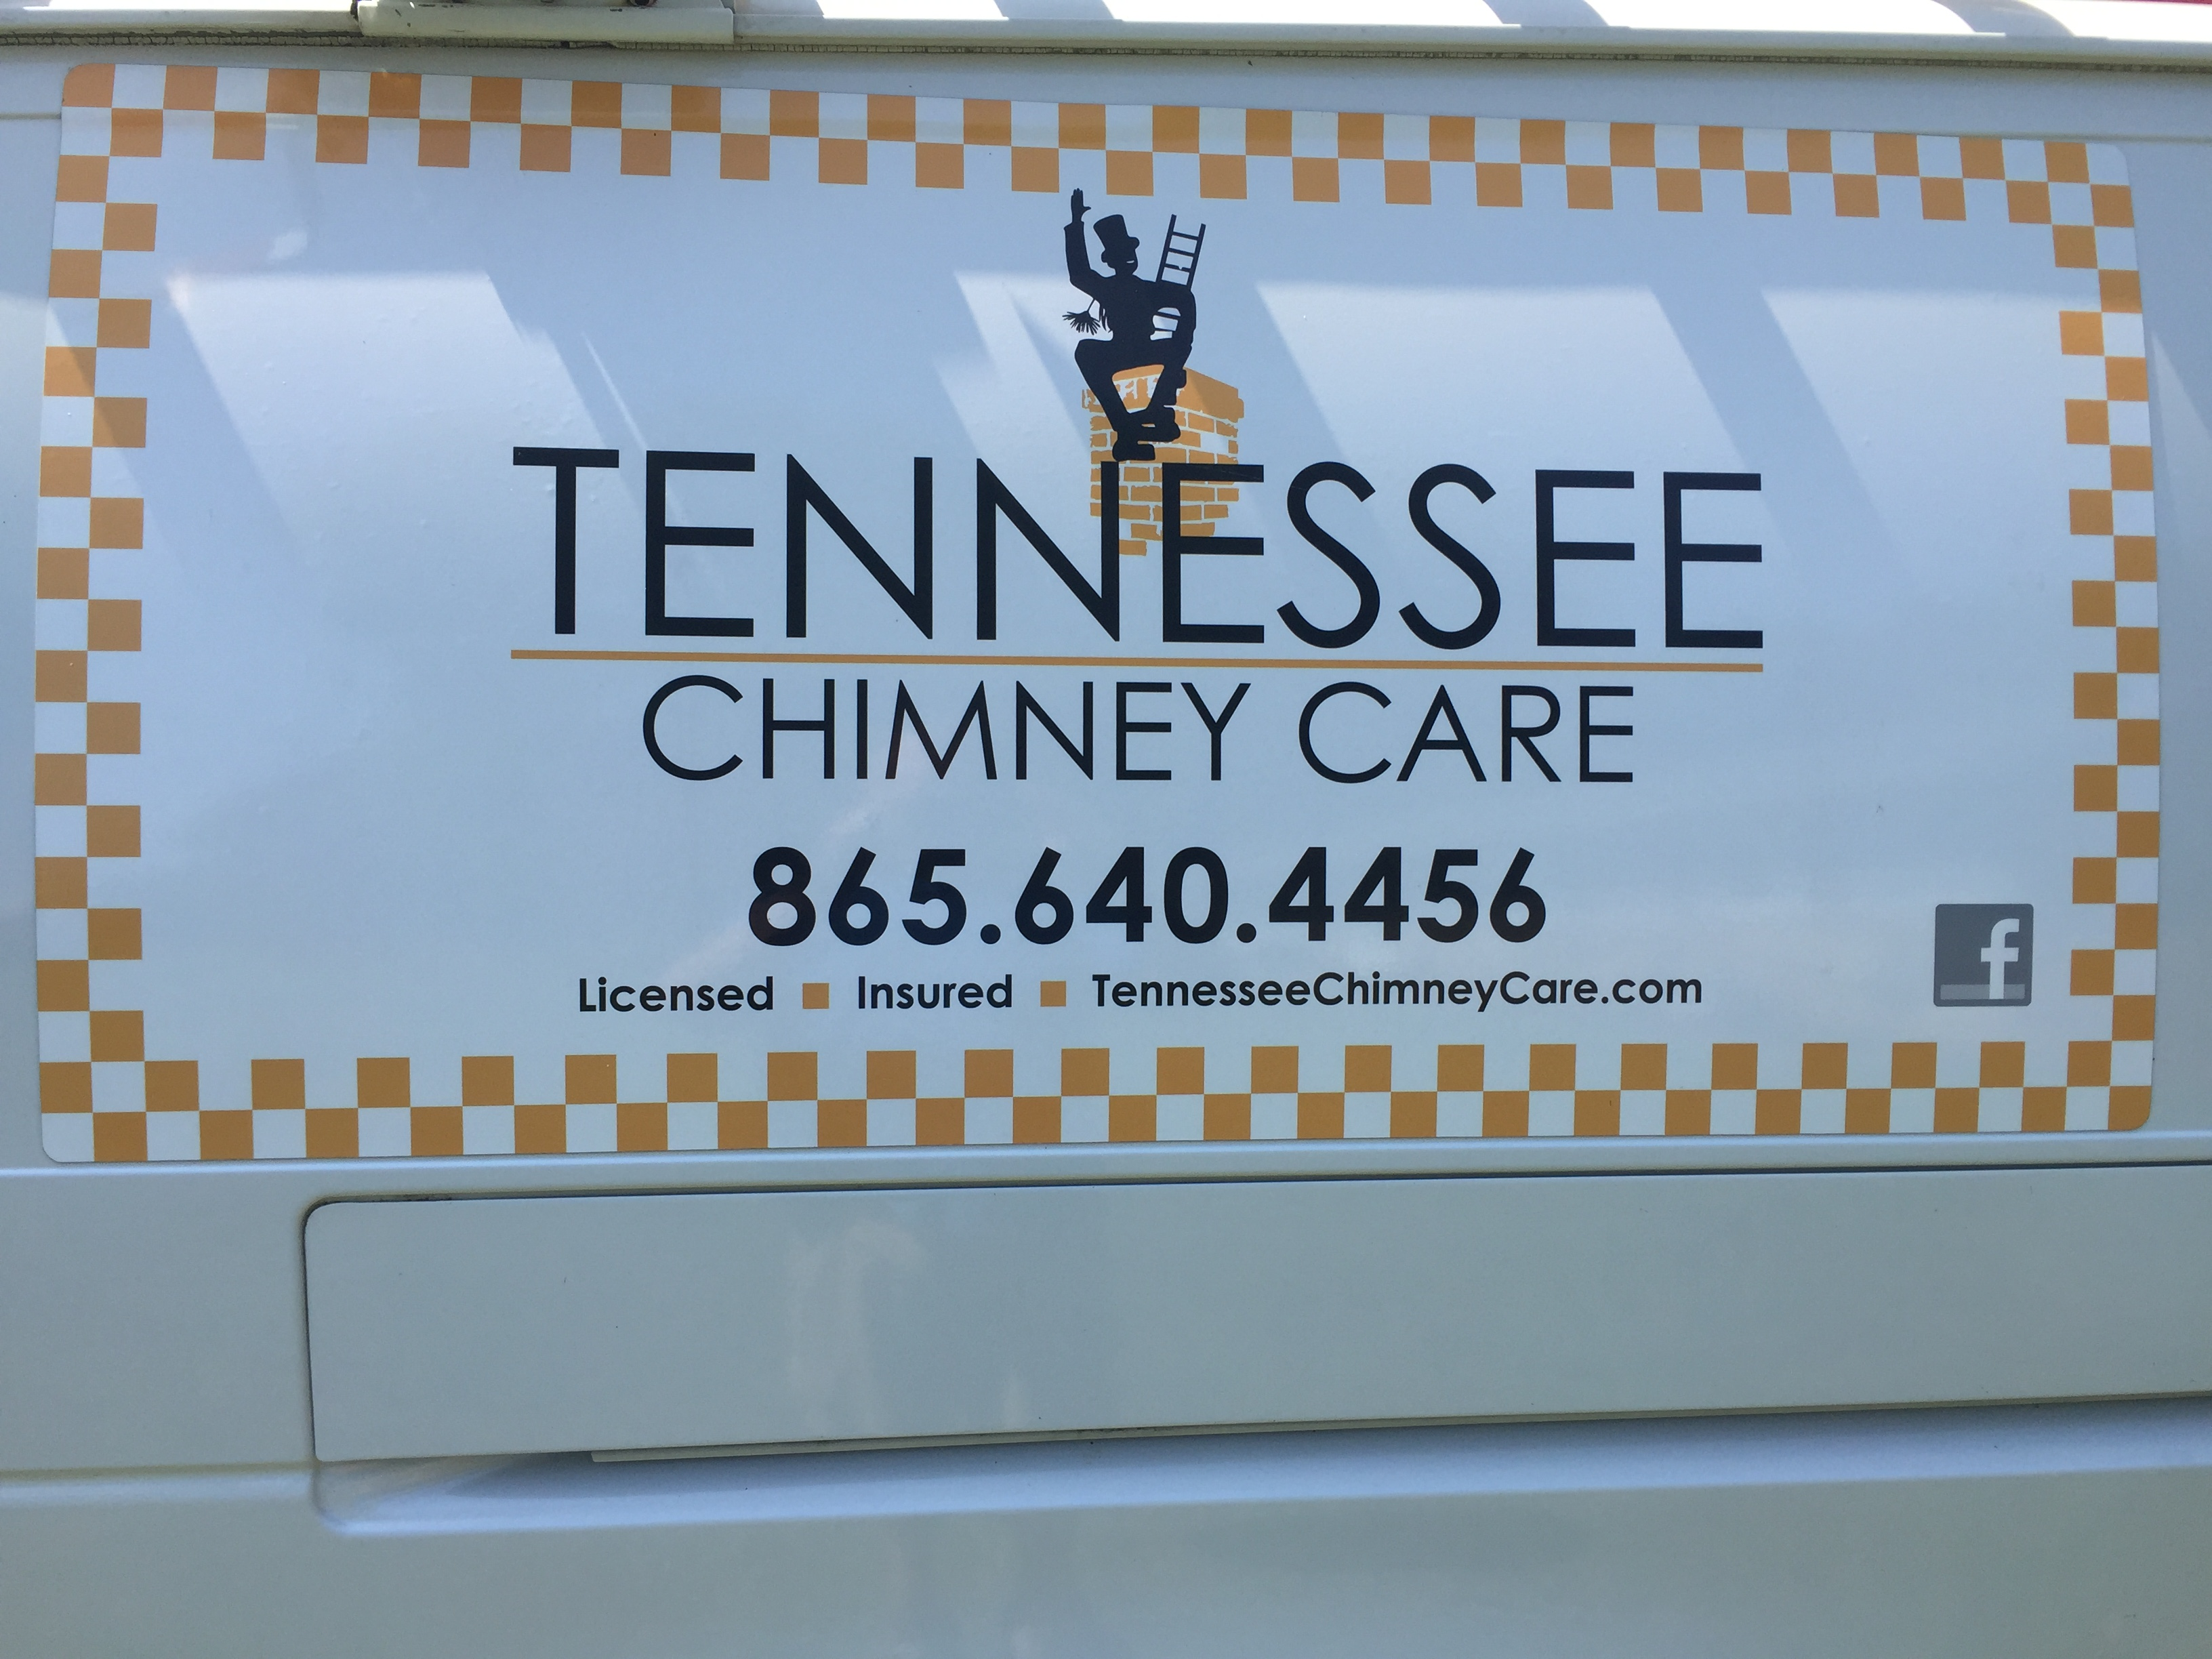 Tennessee Chimney Care logo